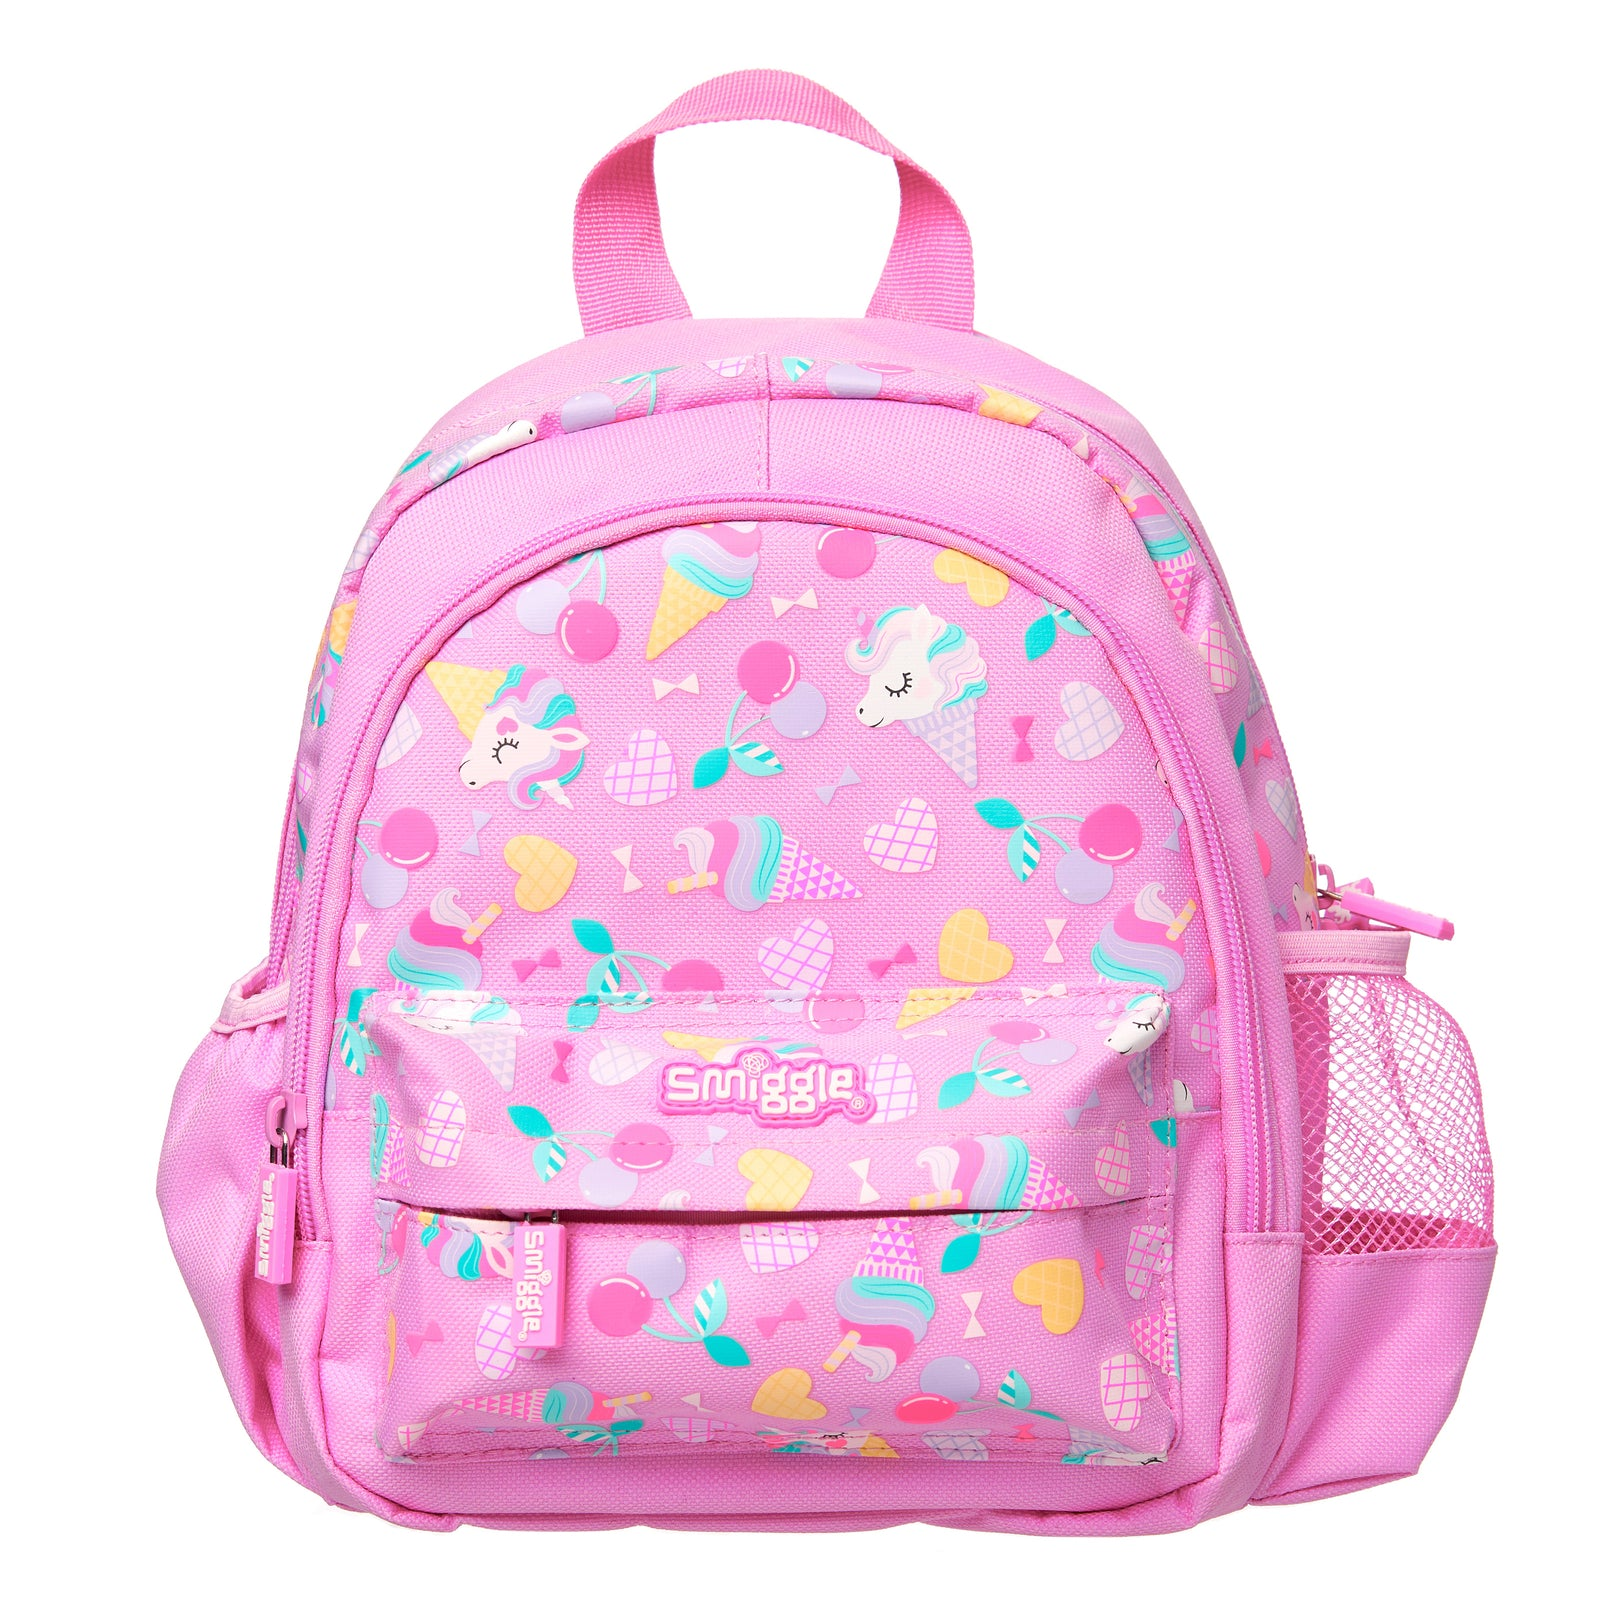 SMIGGLE - MAGIC TEENY TINY BACKPACK PINK